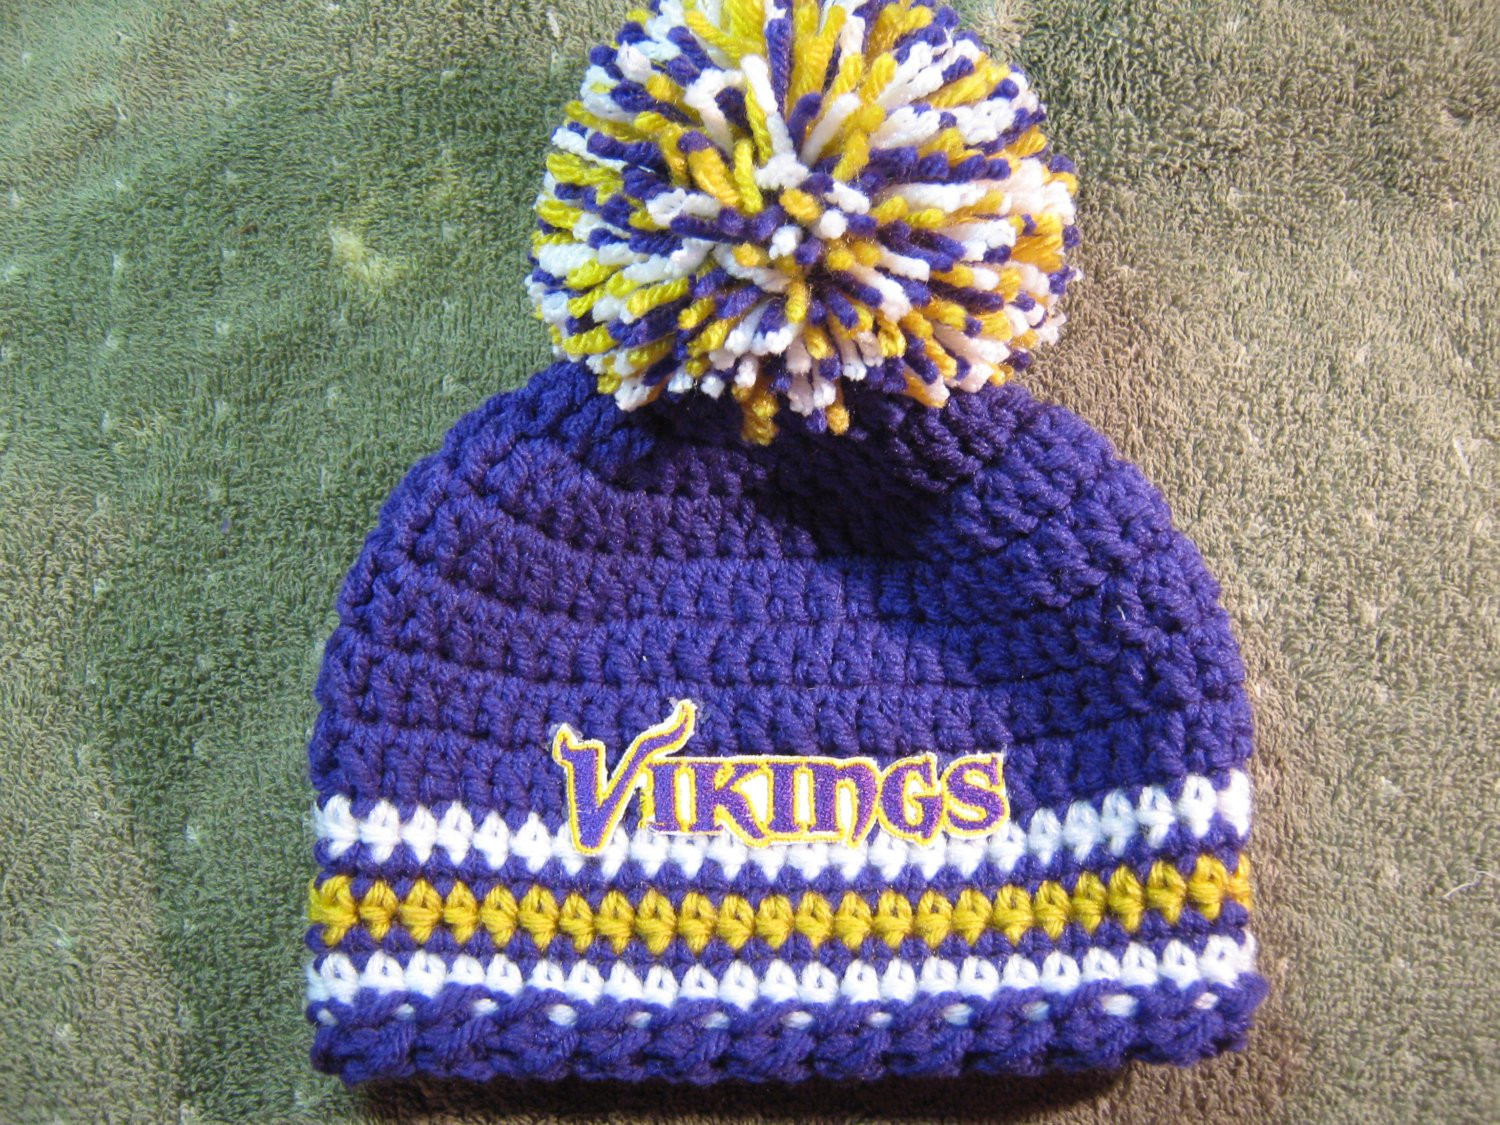 Crochet Viking Hat Awesome Crochet Beanie Baby Hat Minnesota Vikings Colors Embroidered Of Fresh 39 Pics Crochet Viking Hat